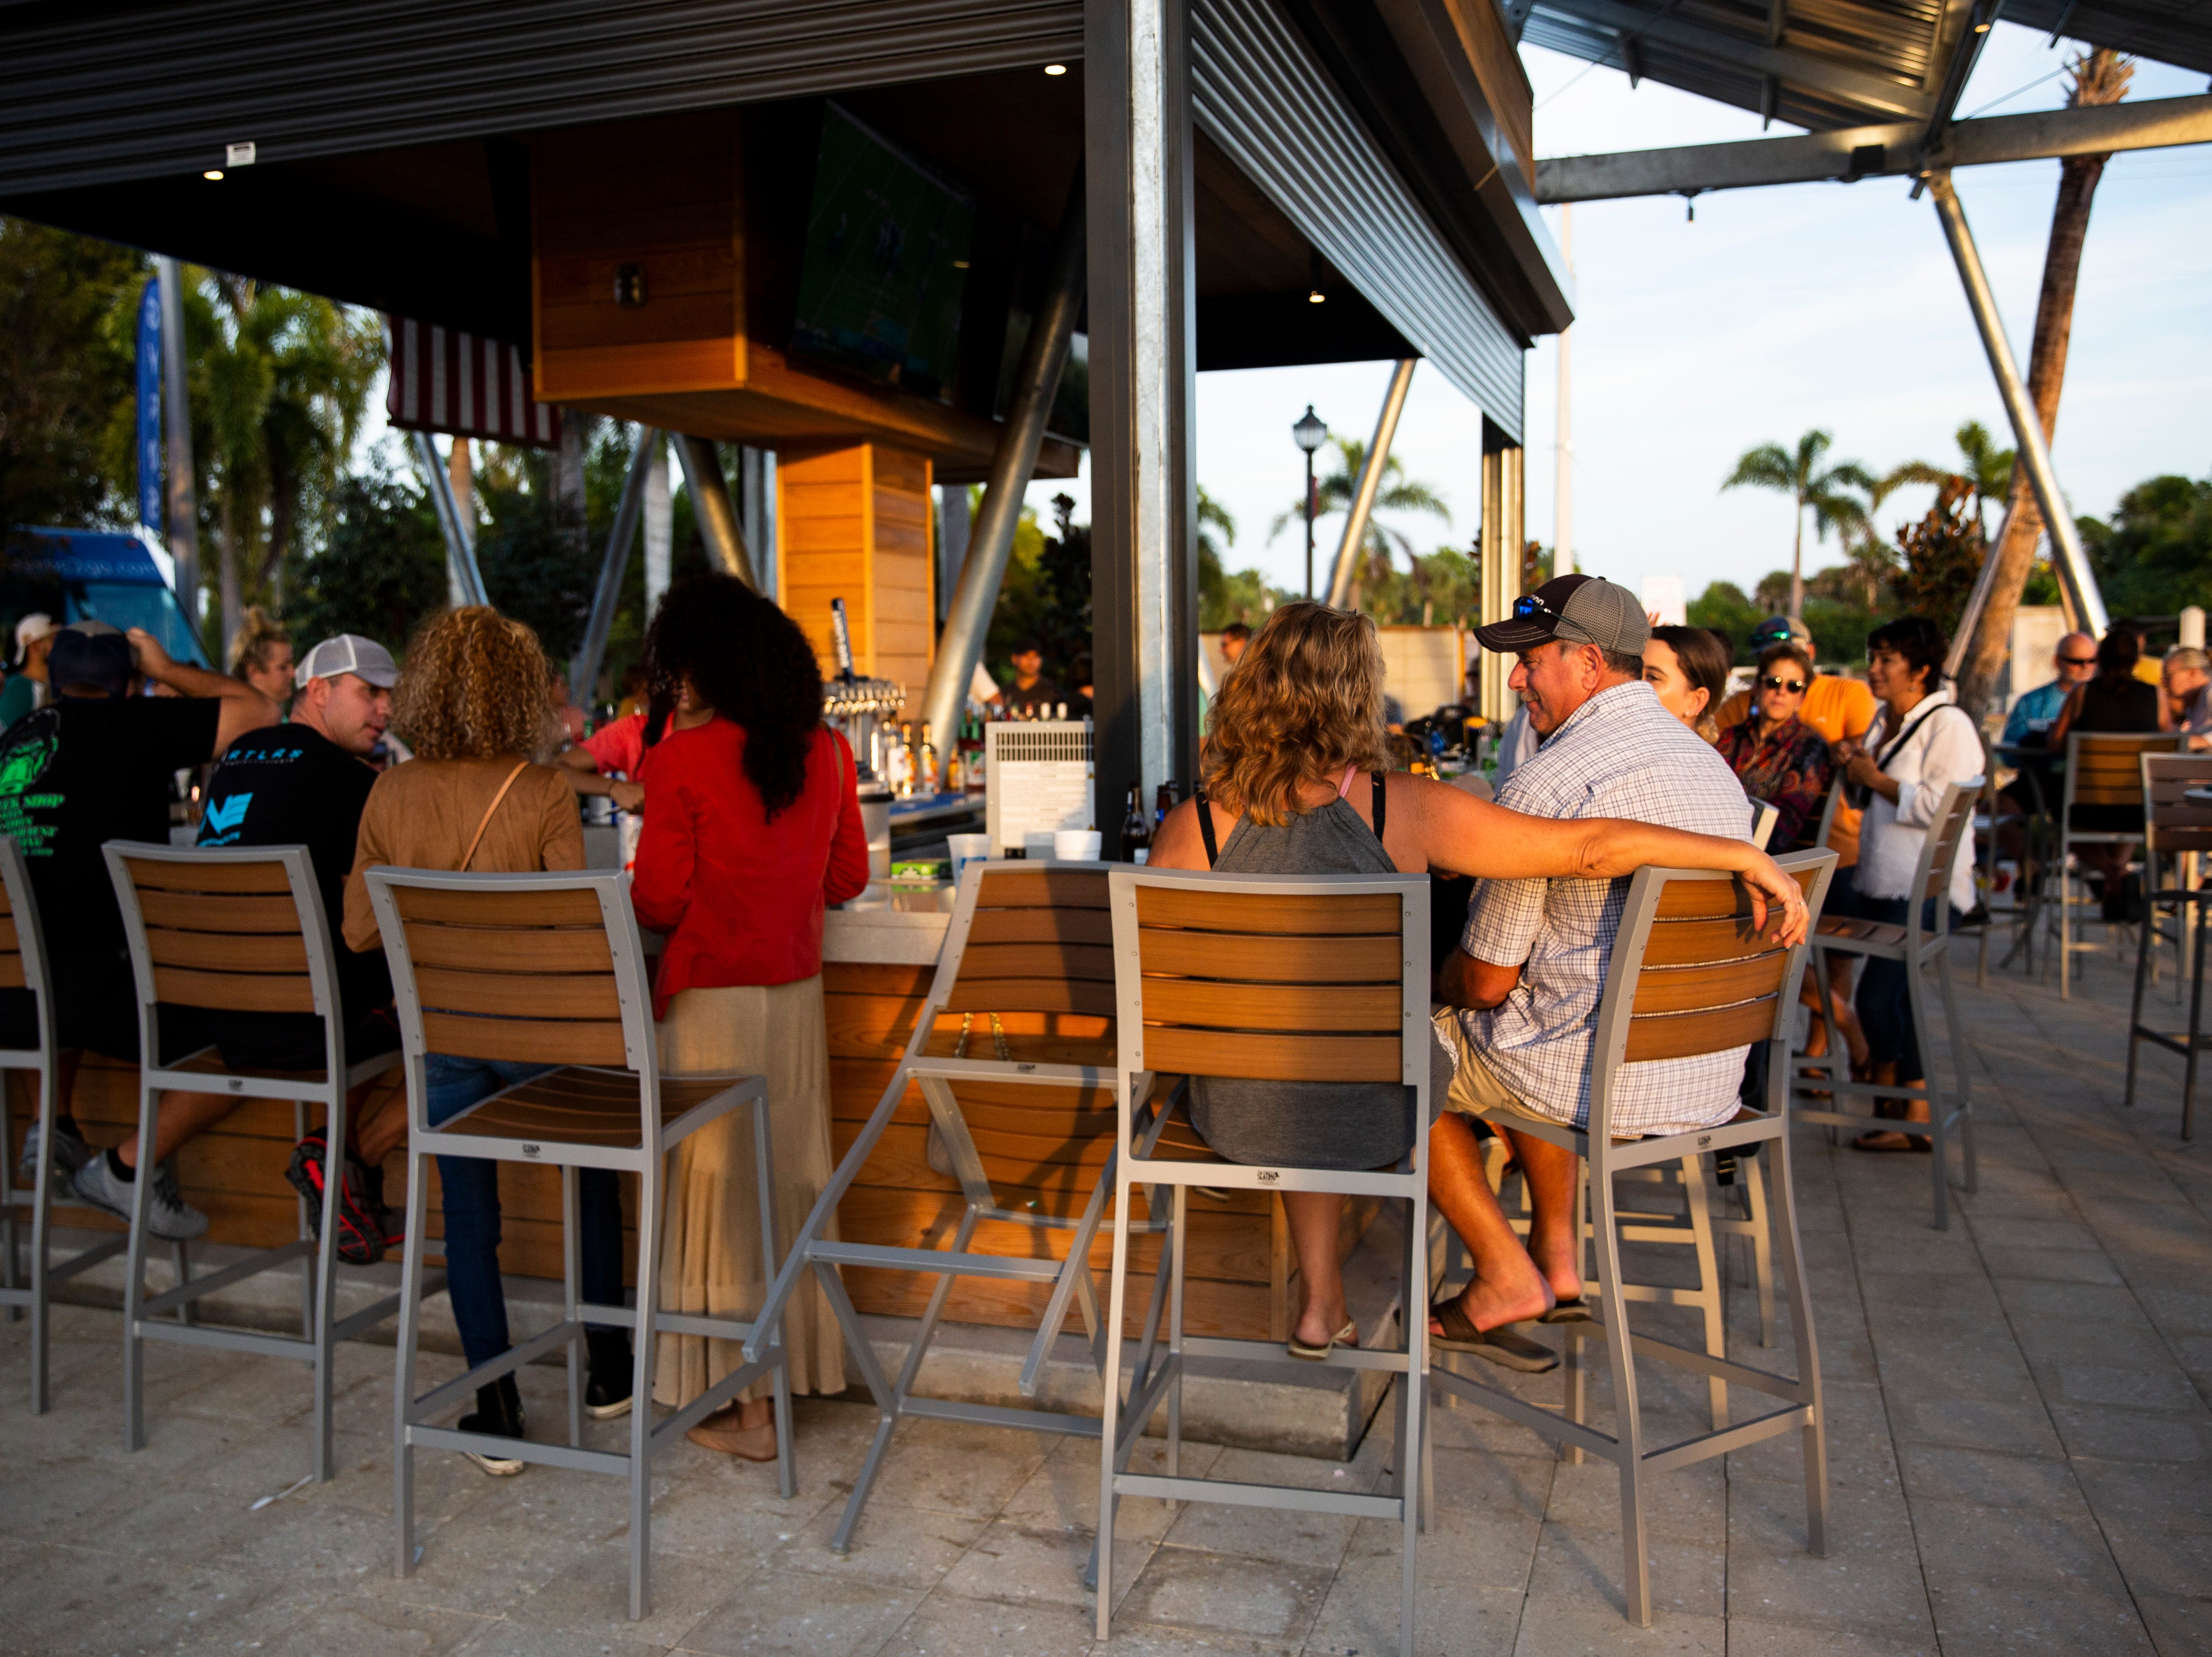 Customers sit around the bar as the sun sets on Sunday, November 25, 2018, at Celebration Park in Naples.